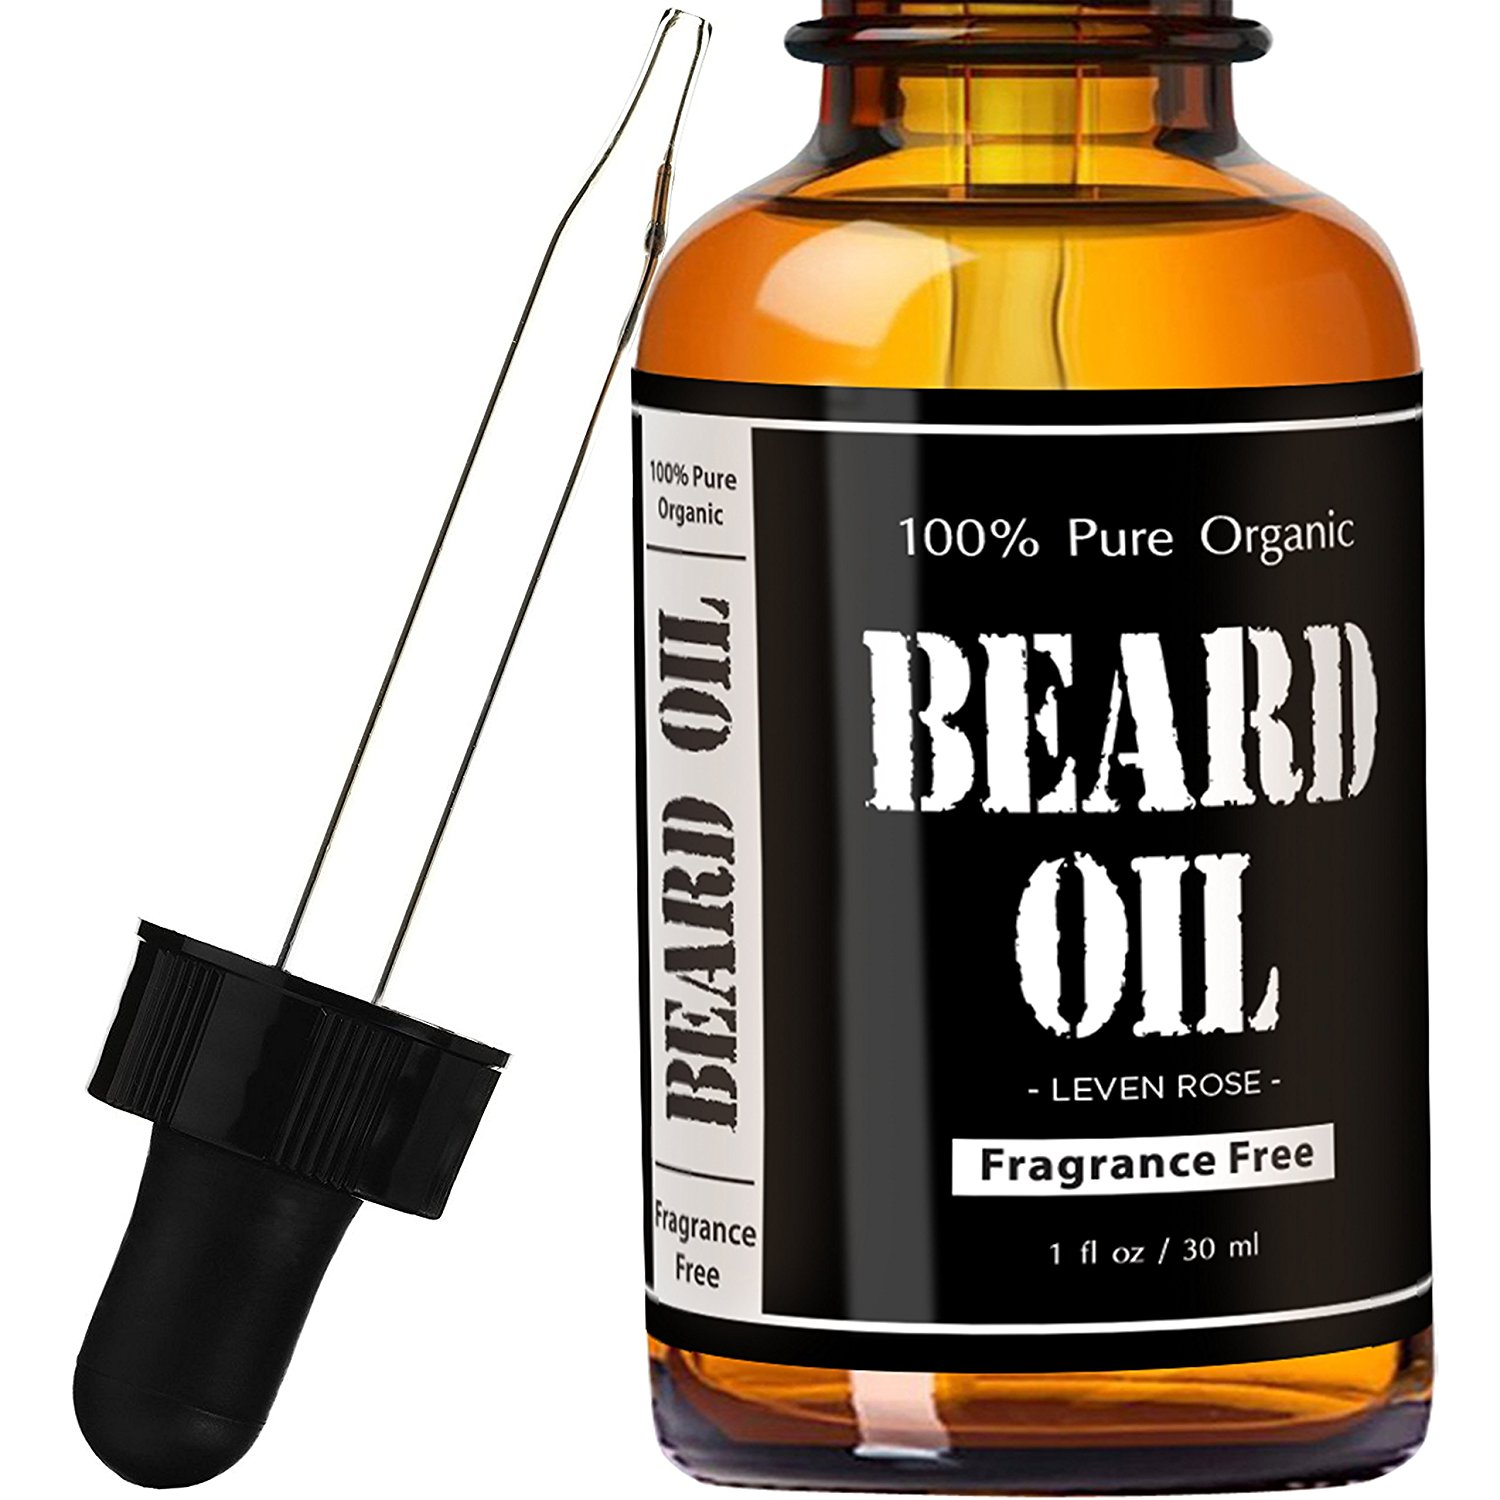 Leven Rose Fragrance Free Beard Oil